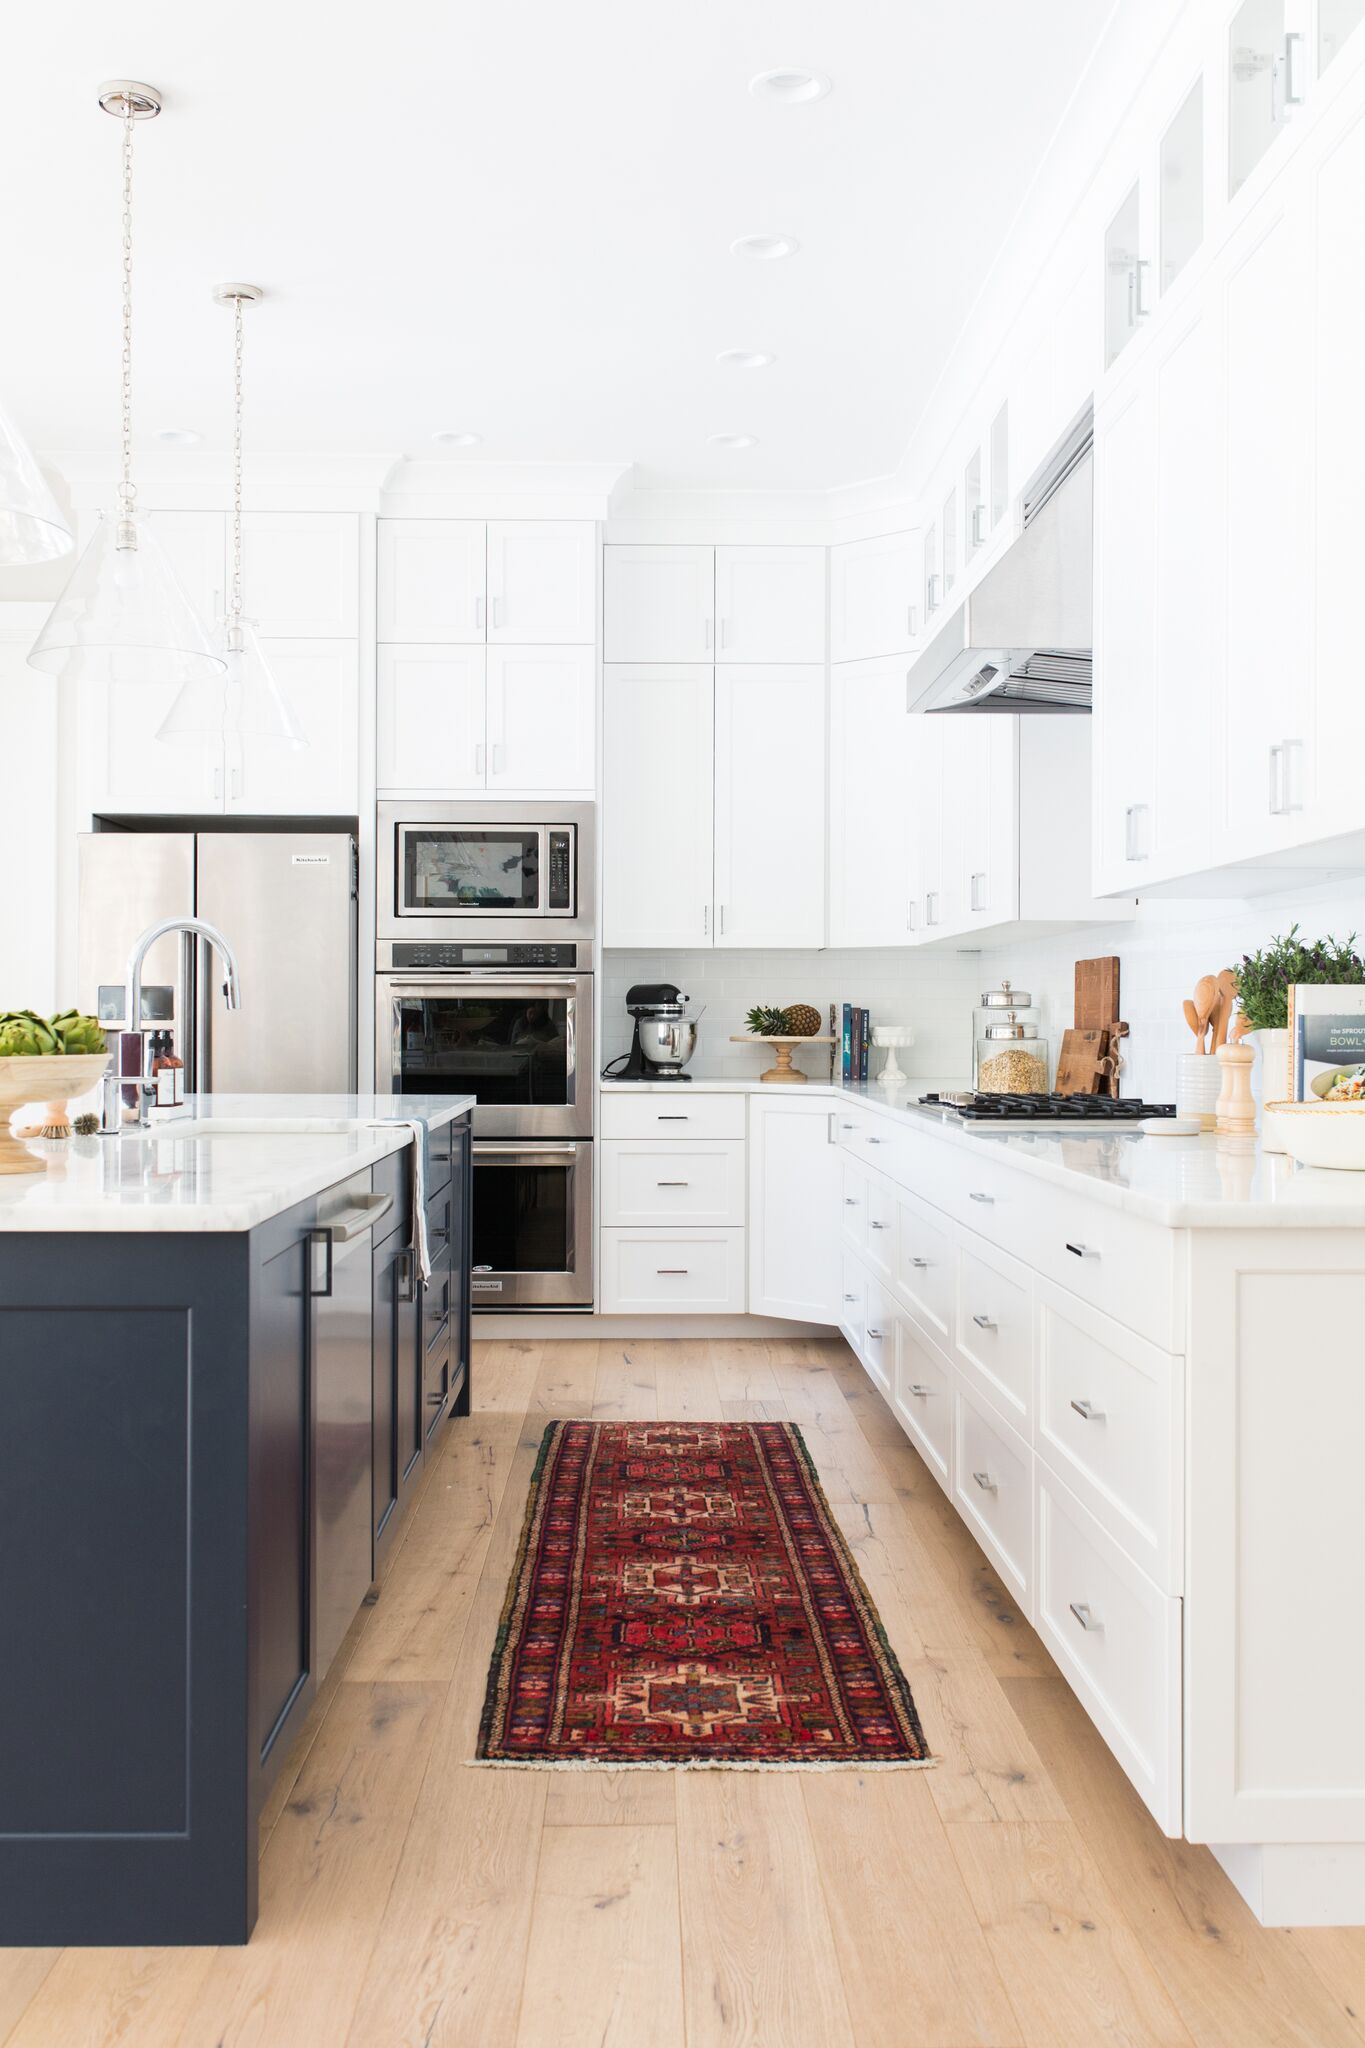 White and navy kitchen with red runner rug